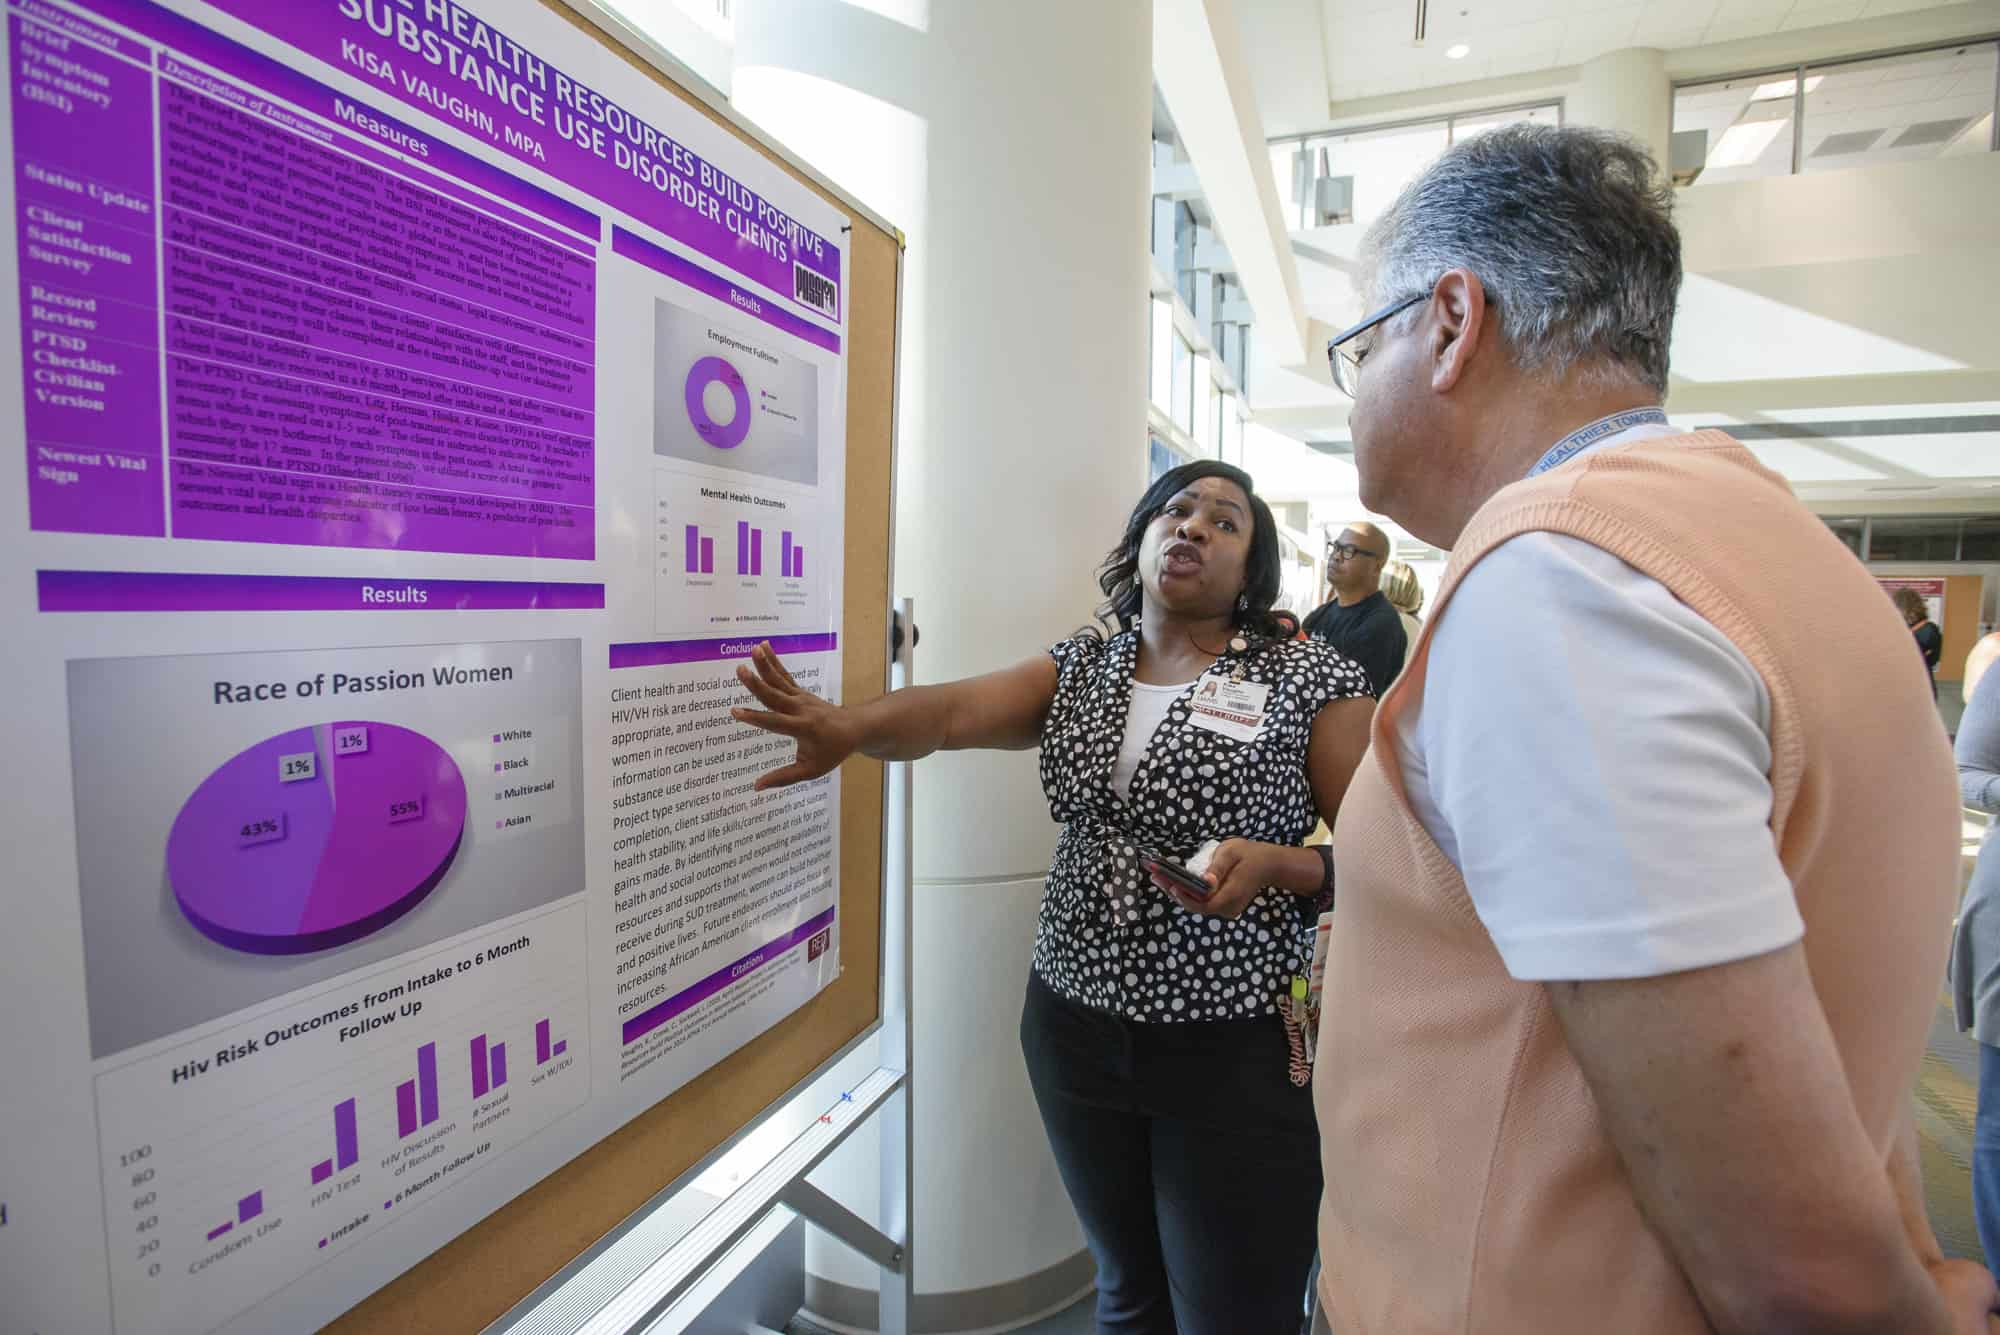 Kisa Vaughn, M.P.A., presents her poster to Reza Hakkak, Ph.D., on the Passion Project, which showed how additional health resources can improve health in African-American women with substance use disorder